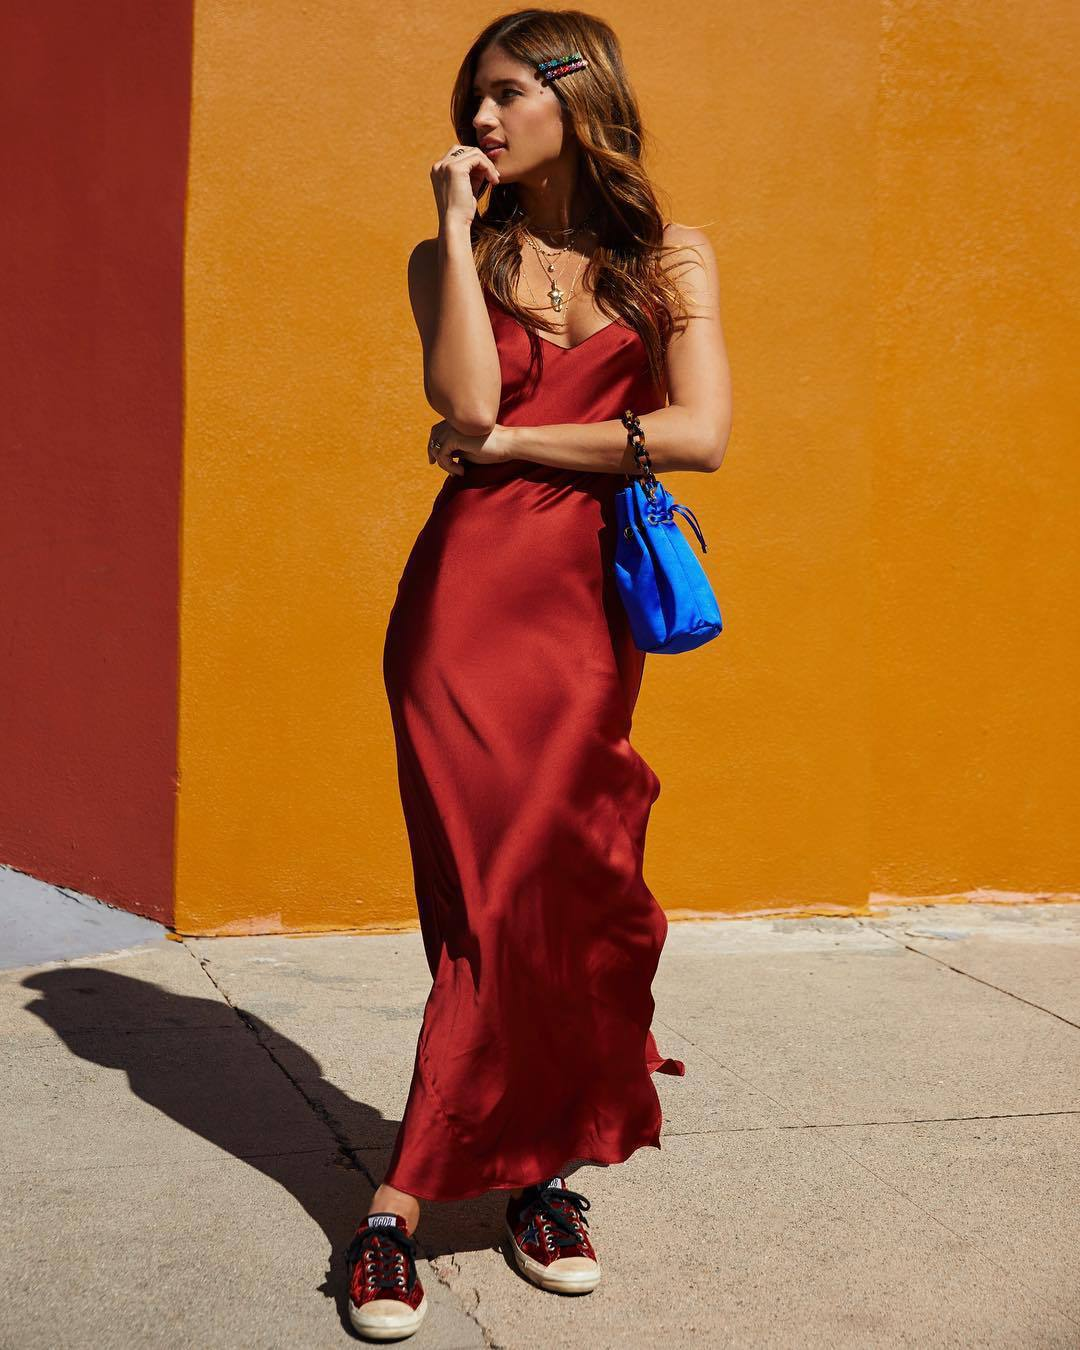 dress cami dress slip dress maxi dress rocky barnes instagram red dress silk dress red sneakers blue bag handbag satin converse